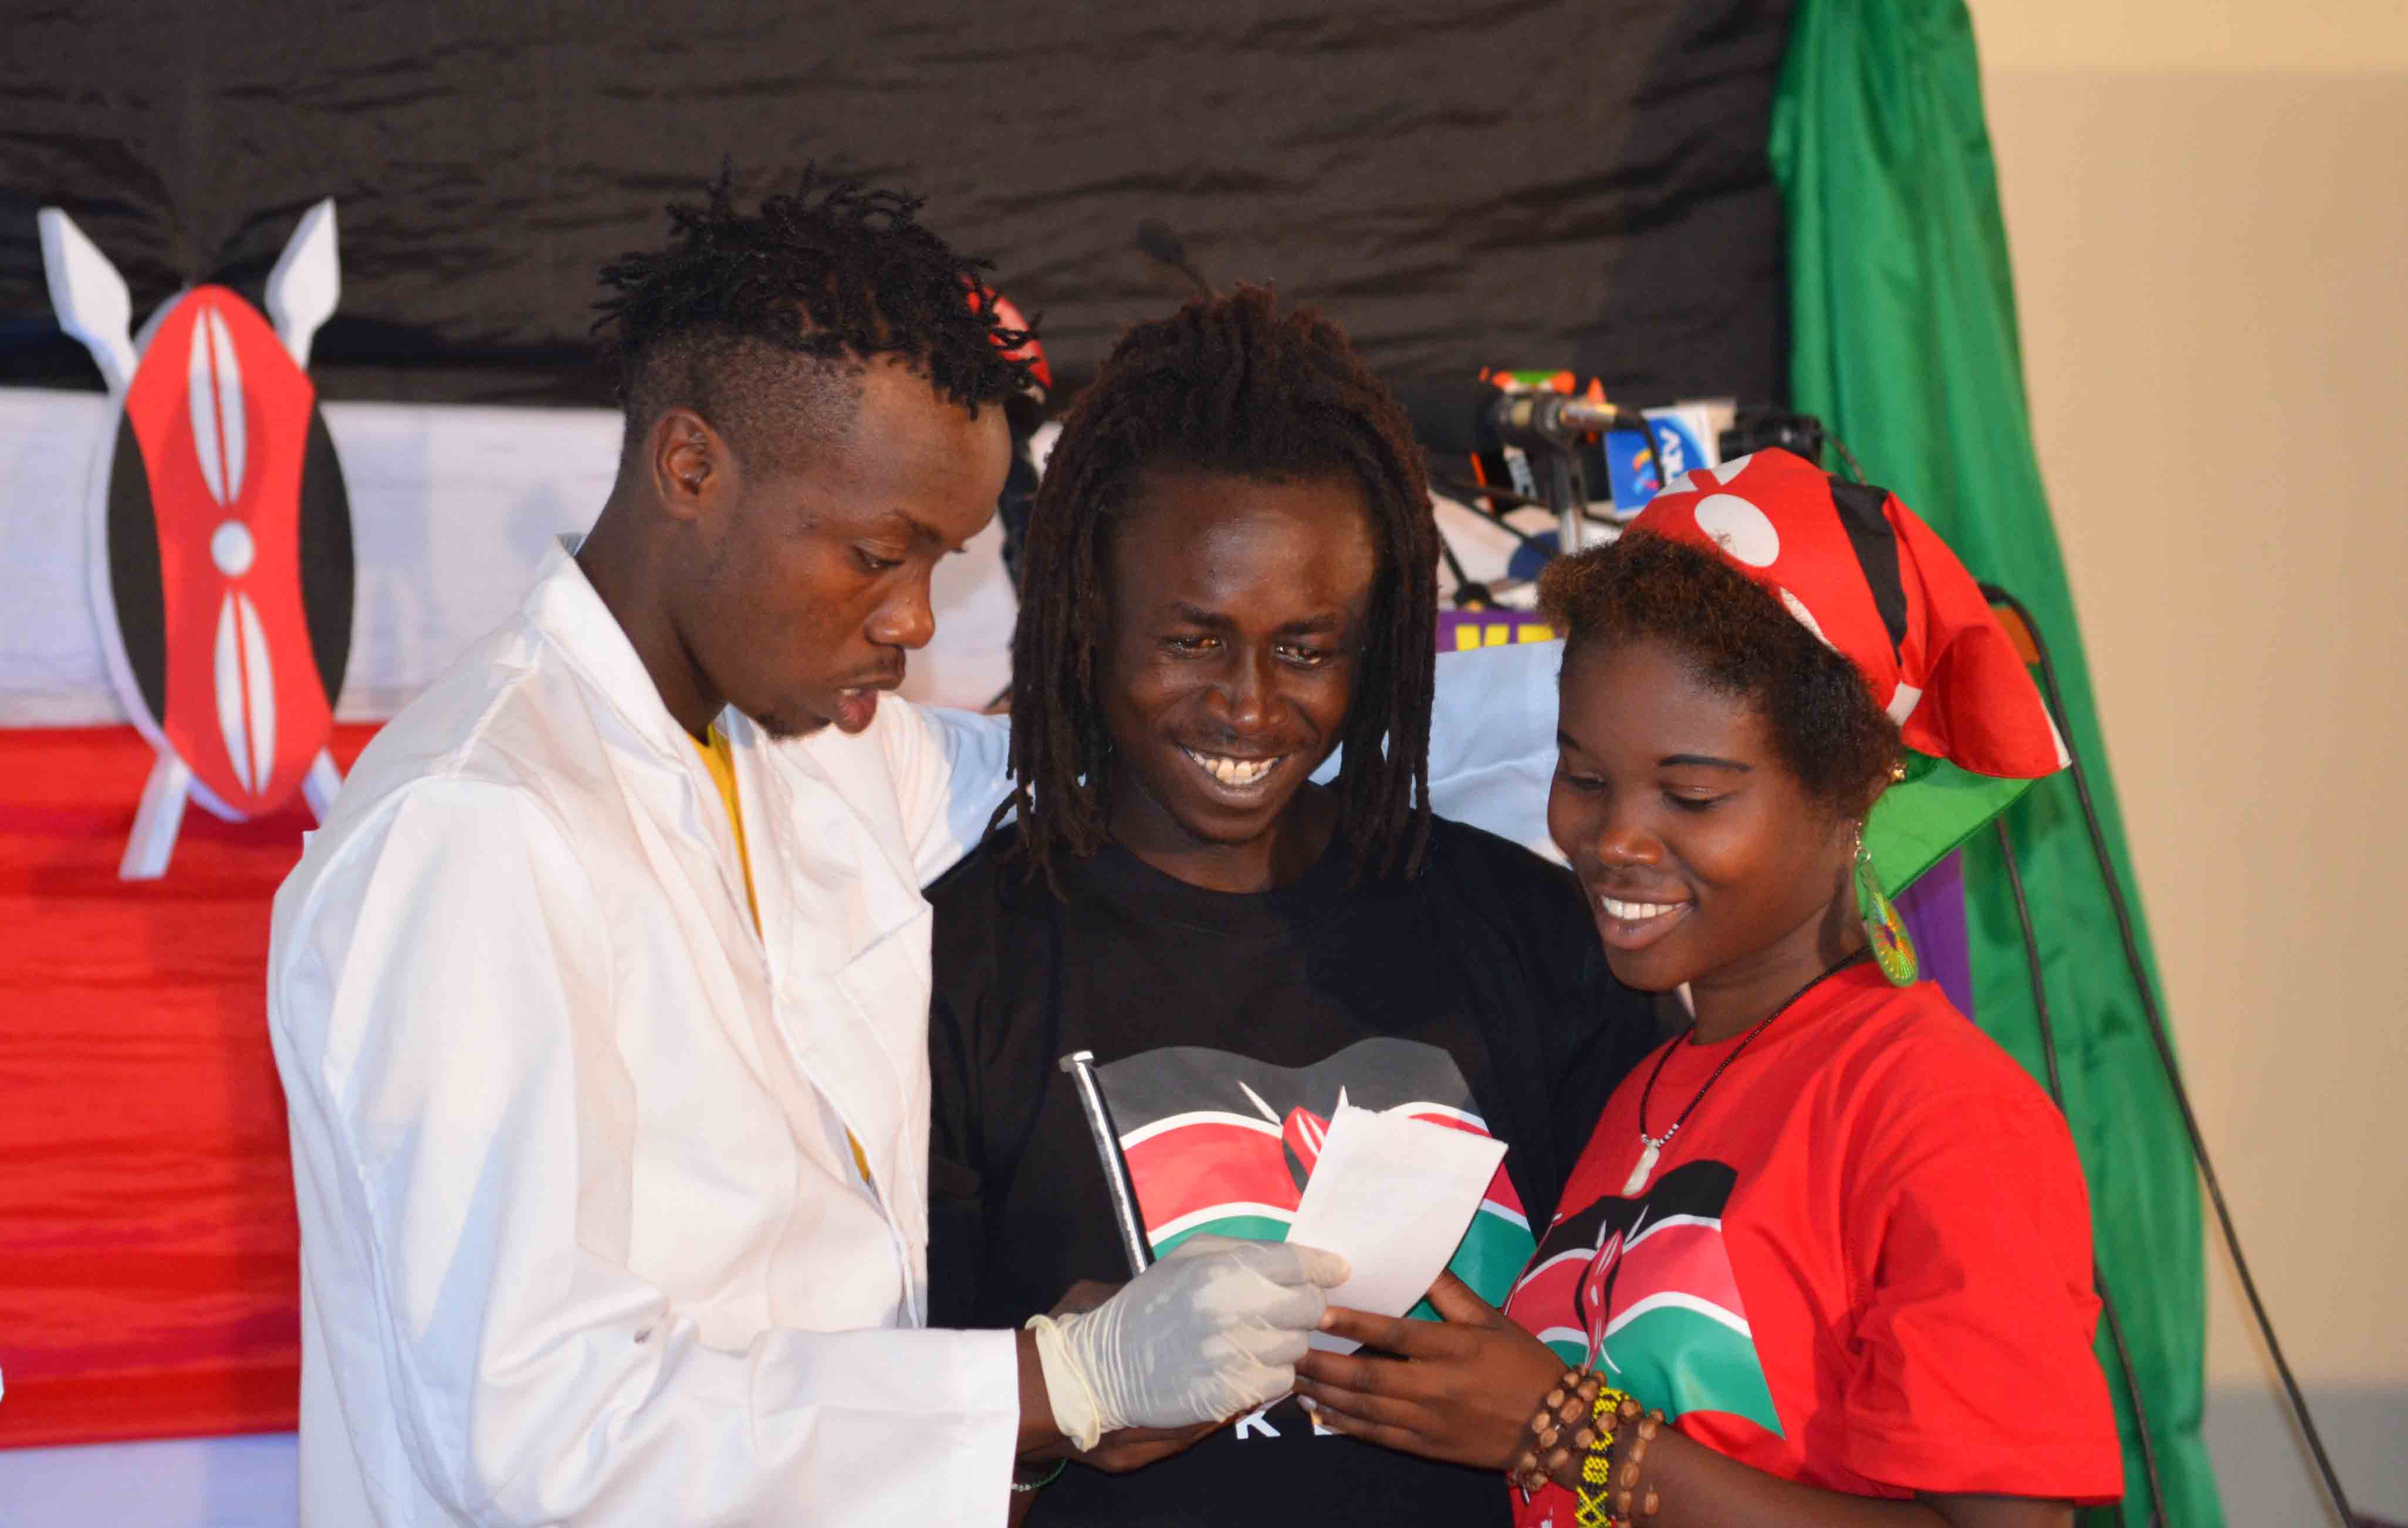 How youth can begin to construct the reality of a better Kenya